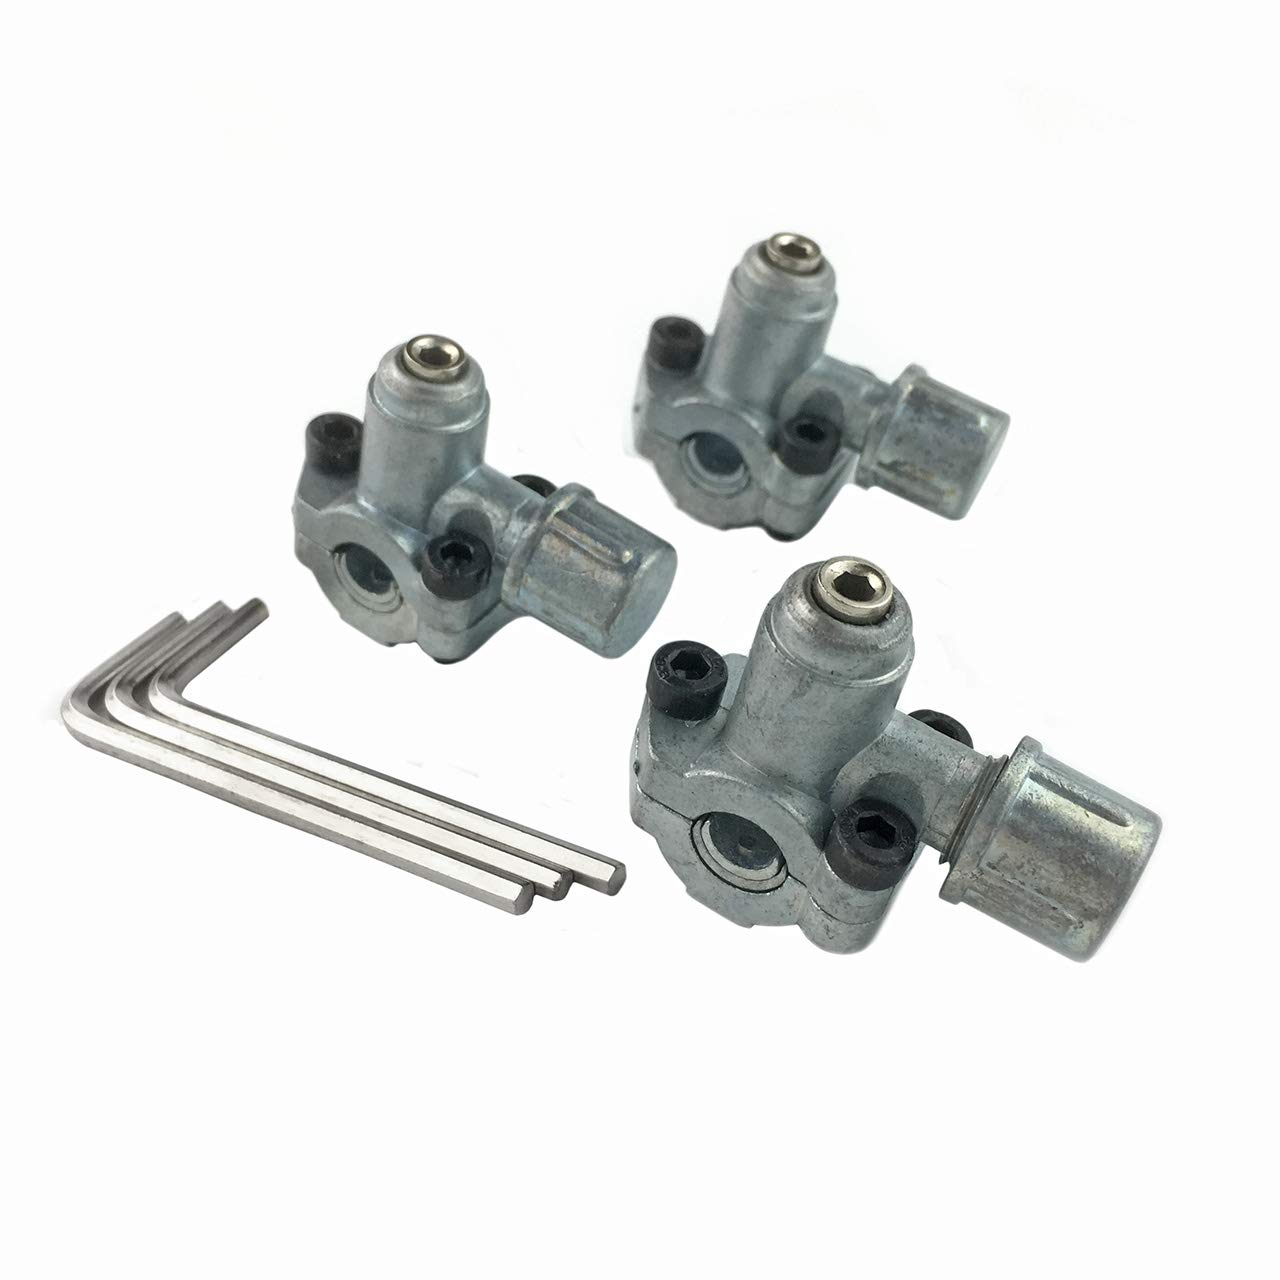 "Ximoon (3 PACK) BPV-31 Bullet Piercing Valve 3 in 1 Access for Air Conditioners HVAC 1/4"", 5/16"", 3/8"" Tubing"